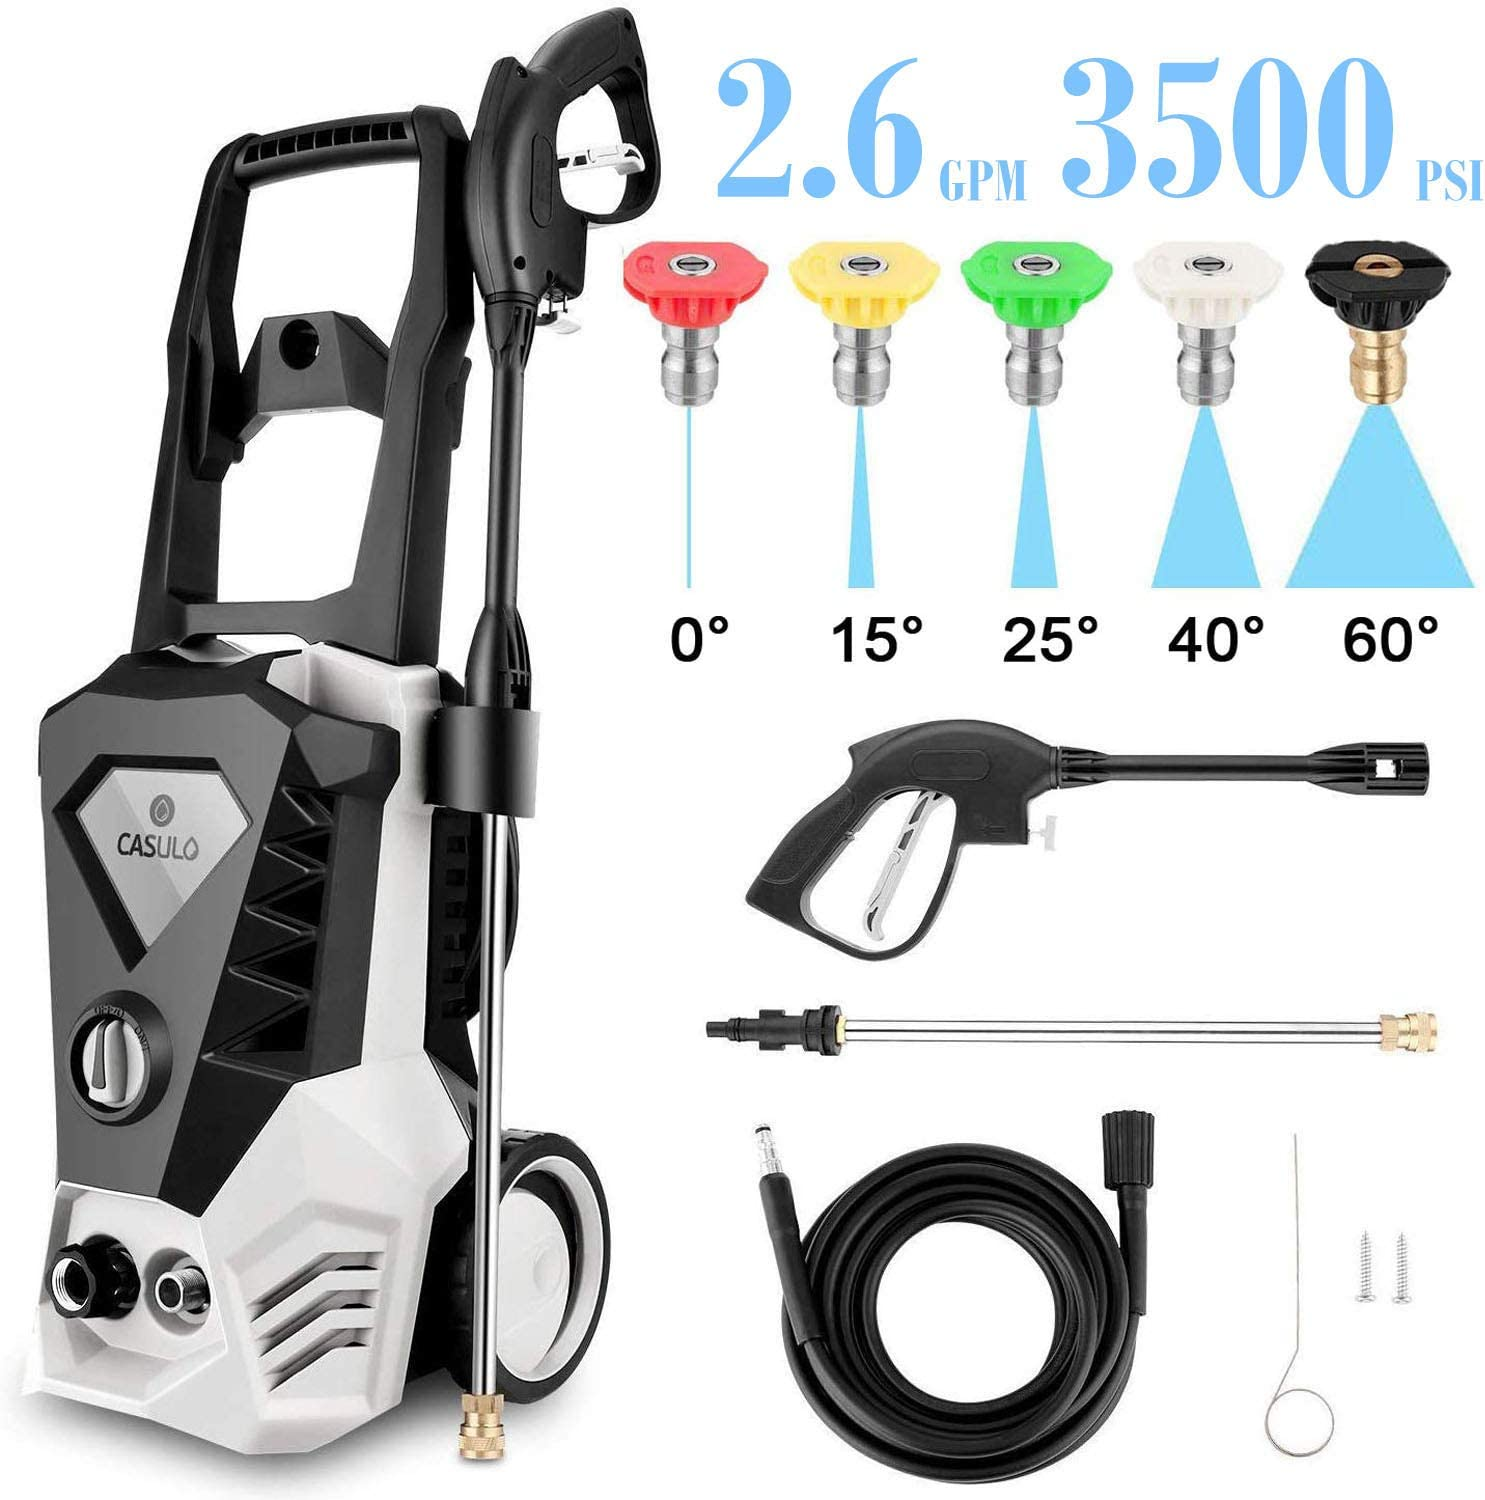 ROOJER Power Washer Electric High Pressure Washer 1800W, 3500 Max PSI 2.6 GPM Car Pressure Washer Patio Cleaner Machine with Spray Gun, 10m High Pressure Hose and 5 Interchangeable Nozzles (US Stock)